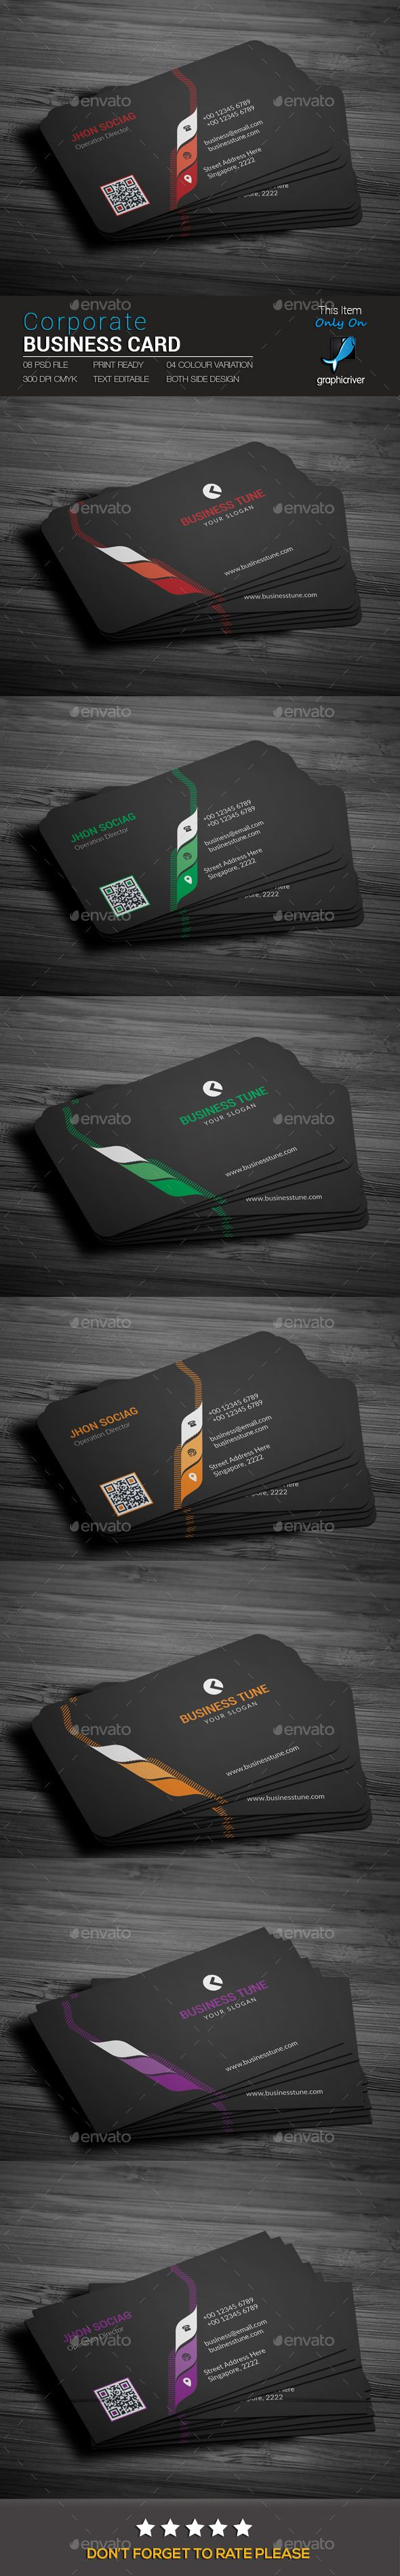 1109 best business card images on pinterest business cards corporate business card magicingreecefo Choice Image